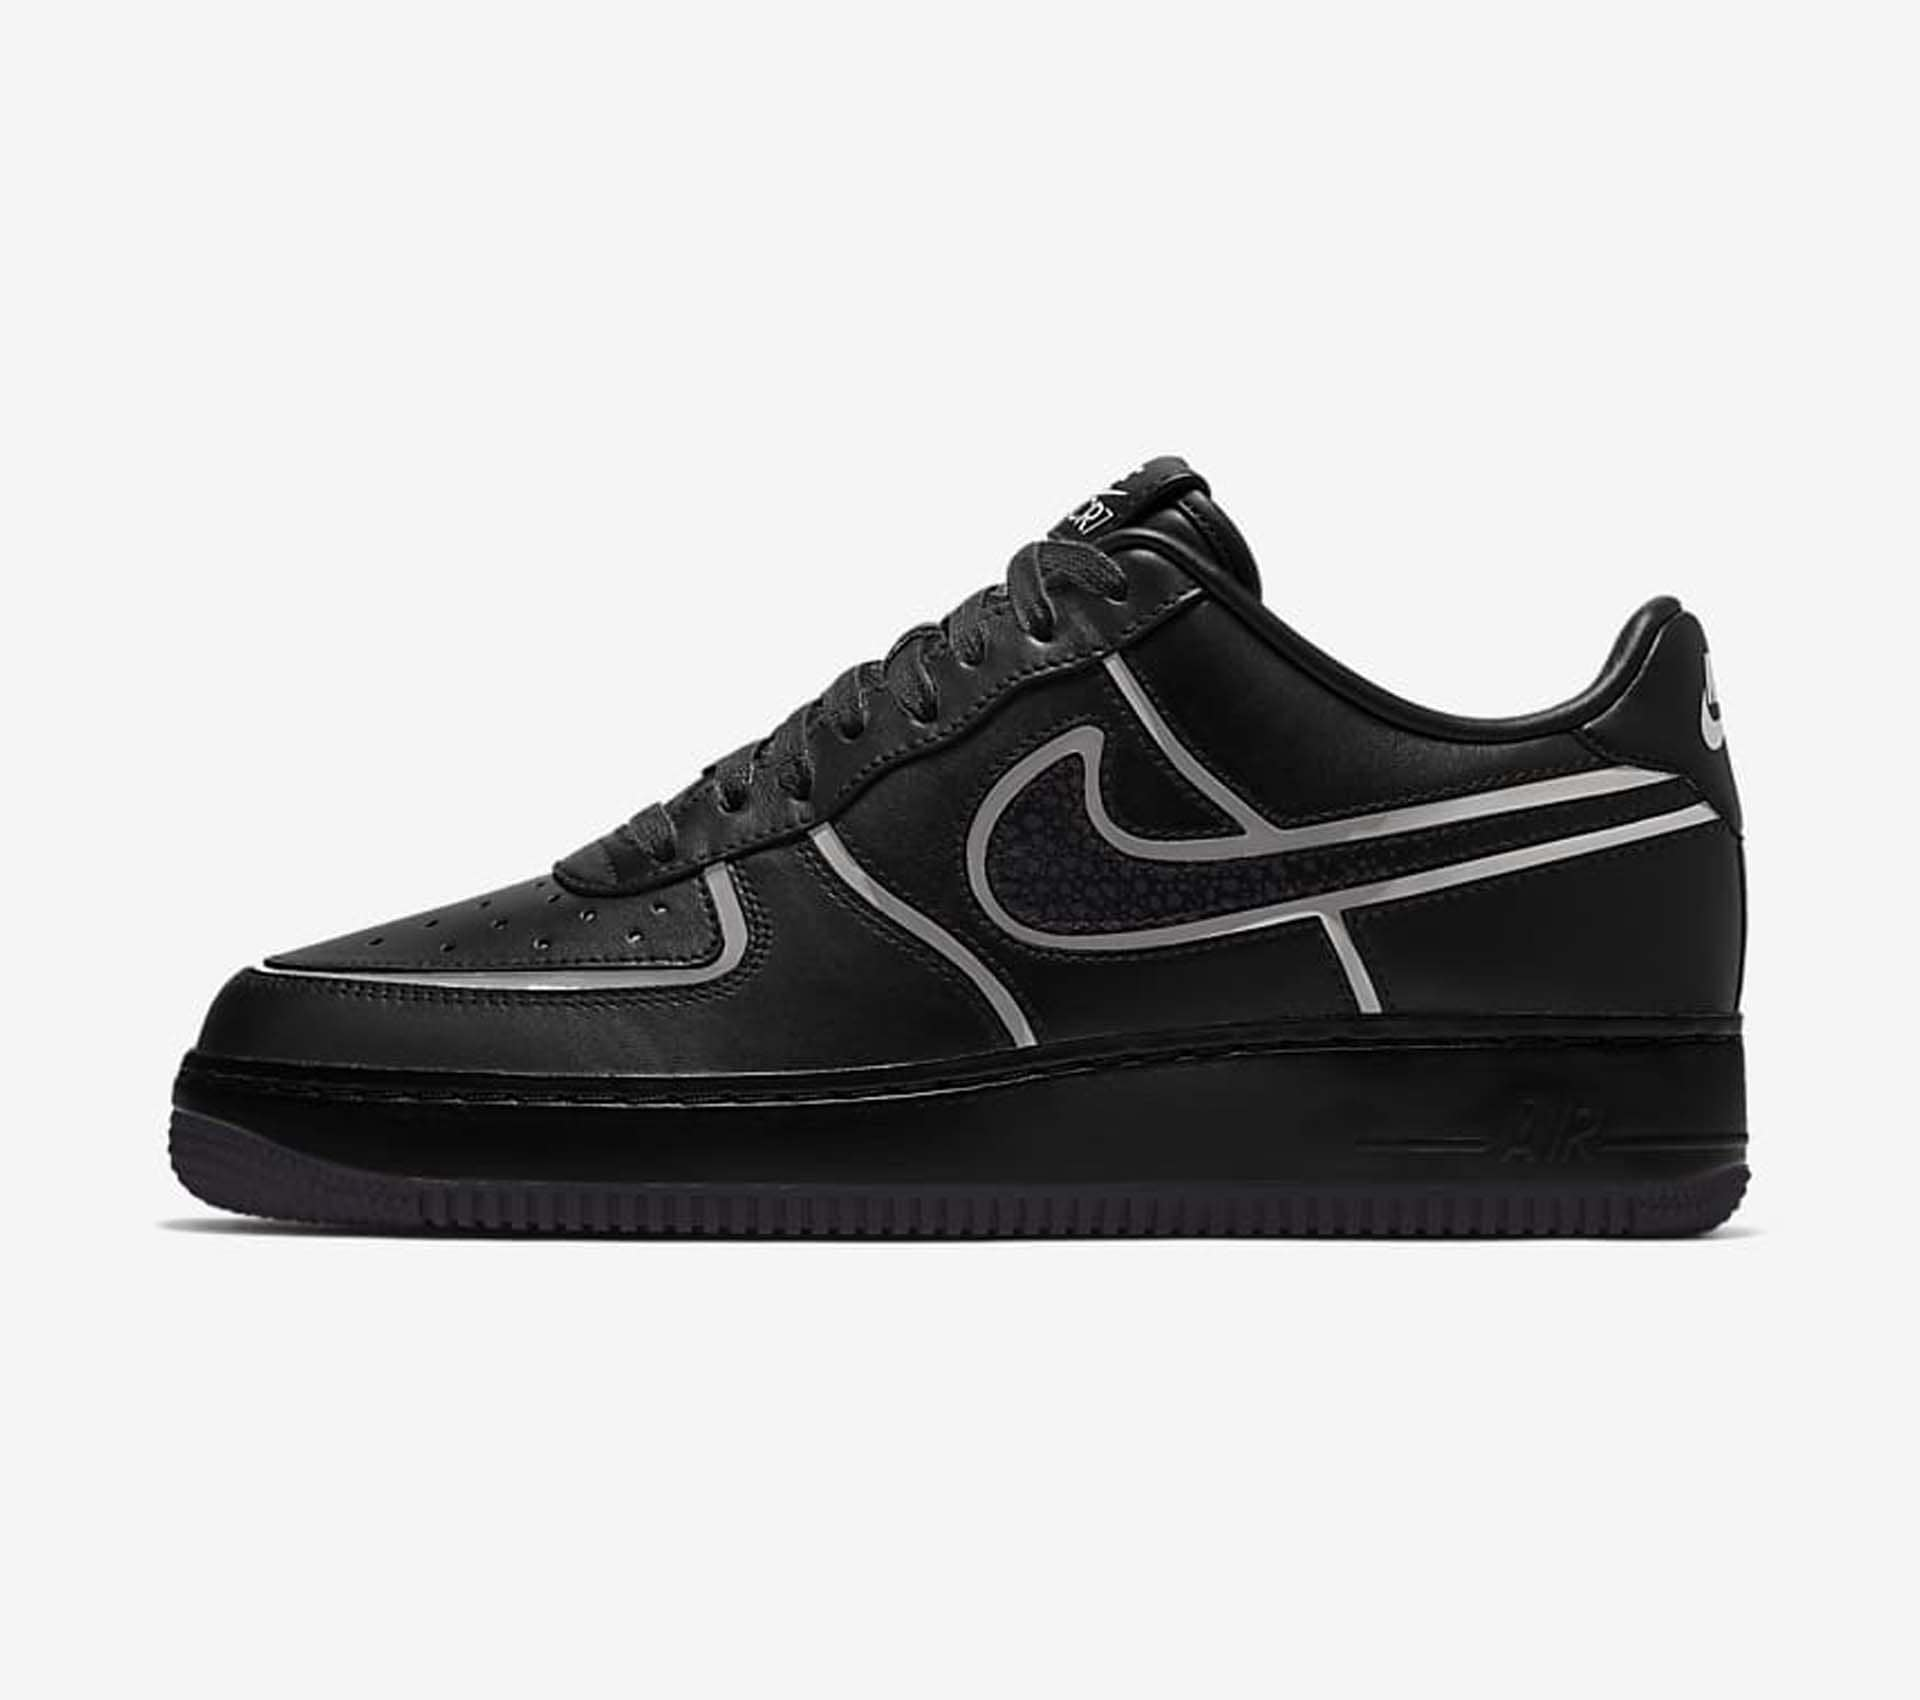 Nike Offer Customisable Air Force 1 Low CR7 By You - SoccerBible